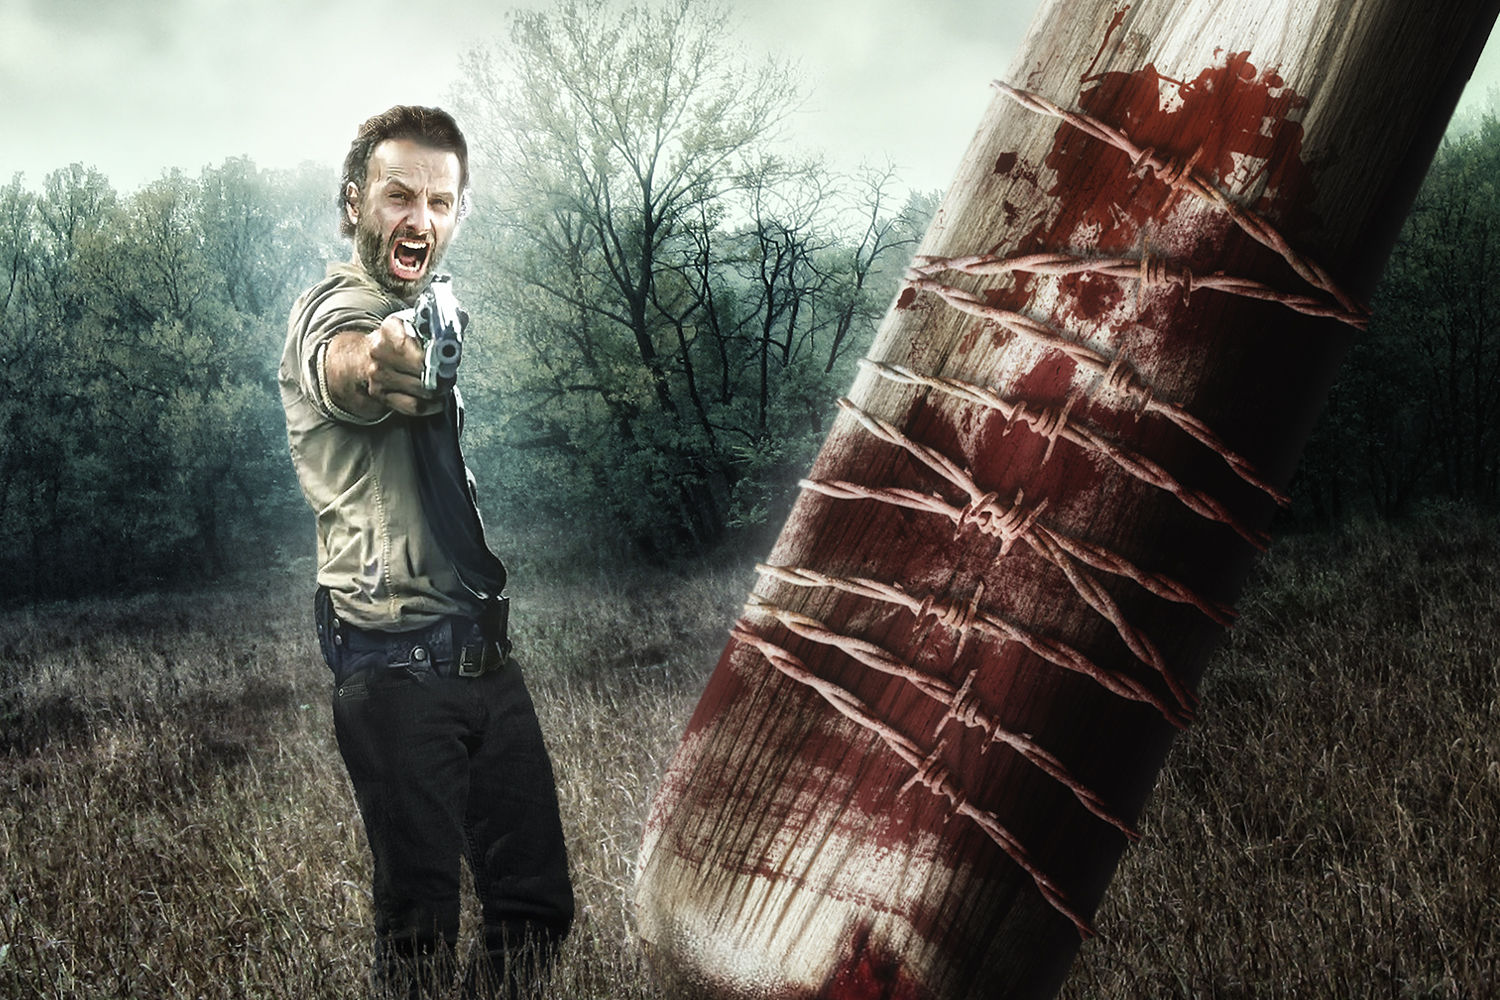 49 Walking Dead Wallpaper Season 6 On Wallpapersafari